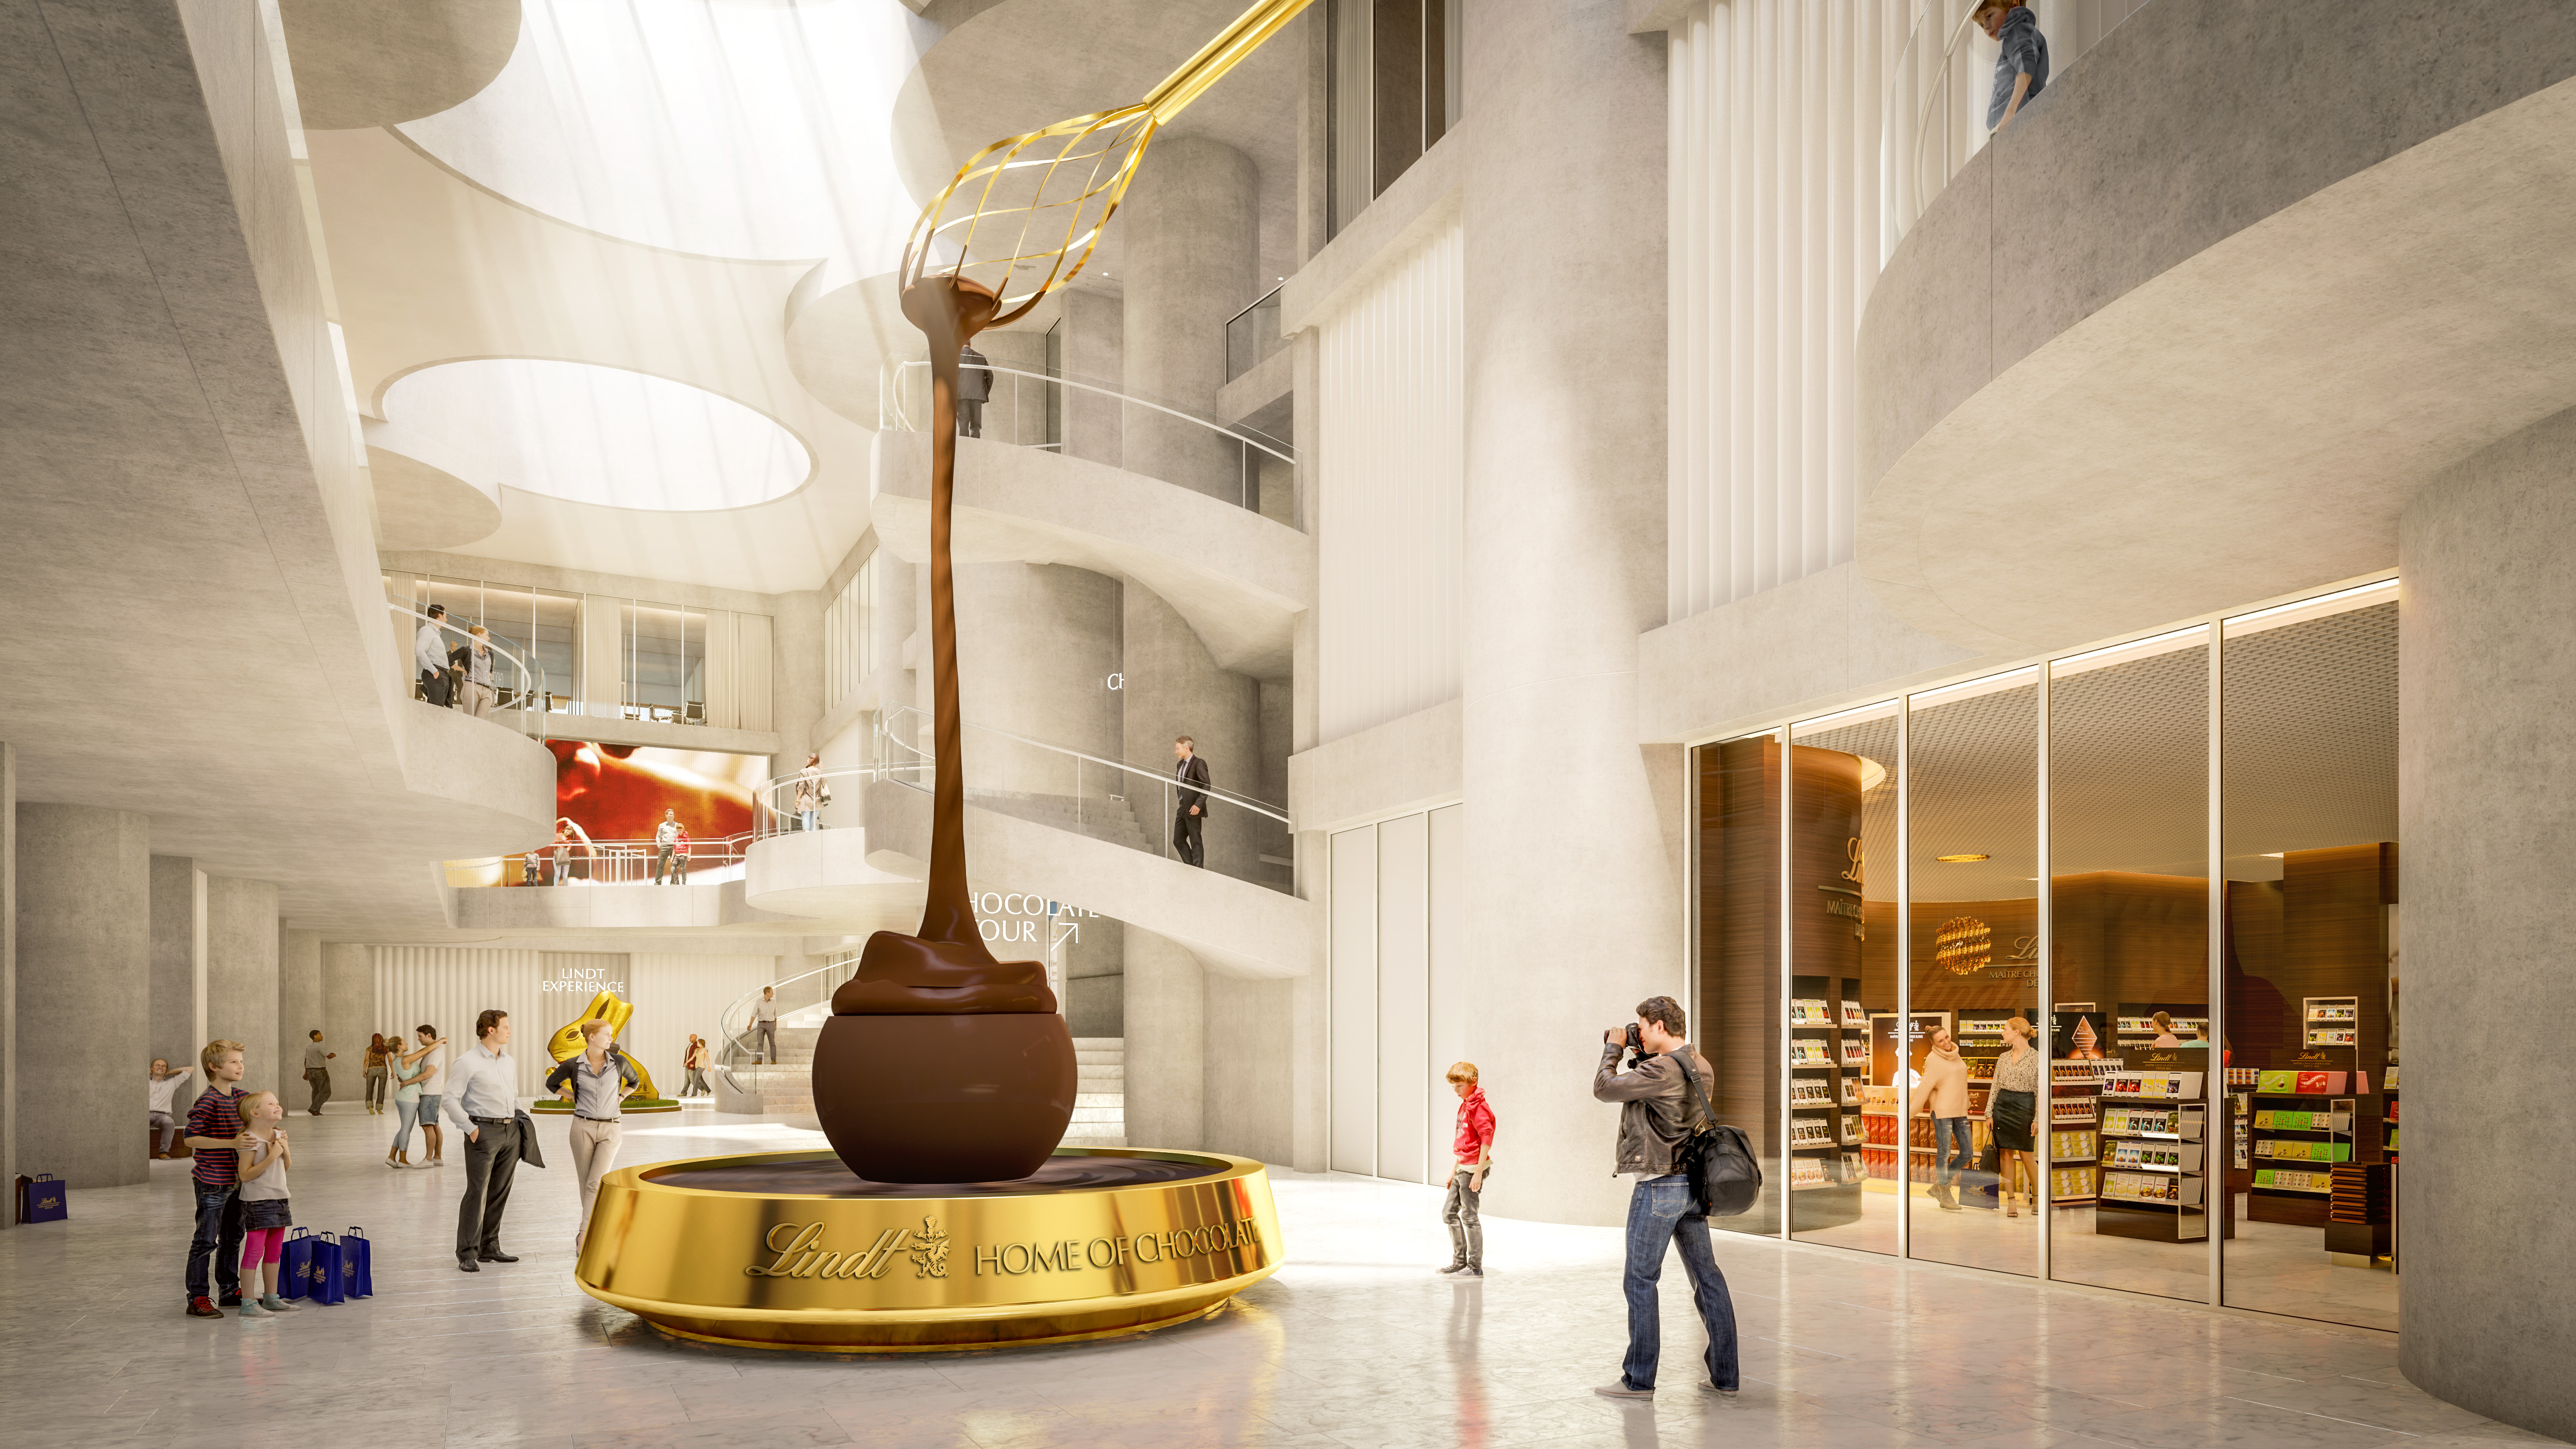 Lindt Home of Chocolate: Opening Date for Unique Chocolate Experience Announced